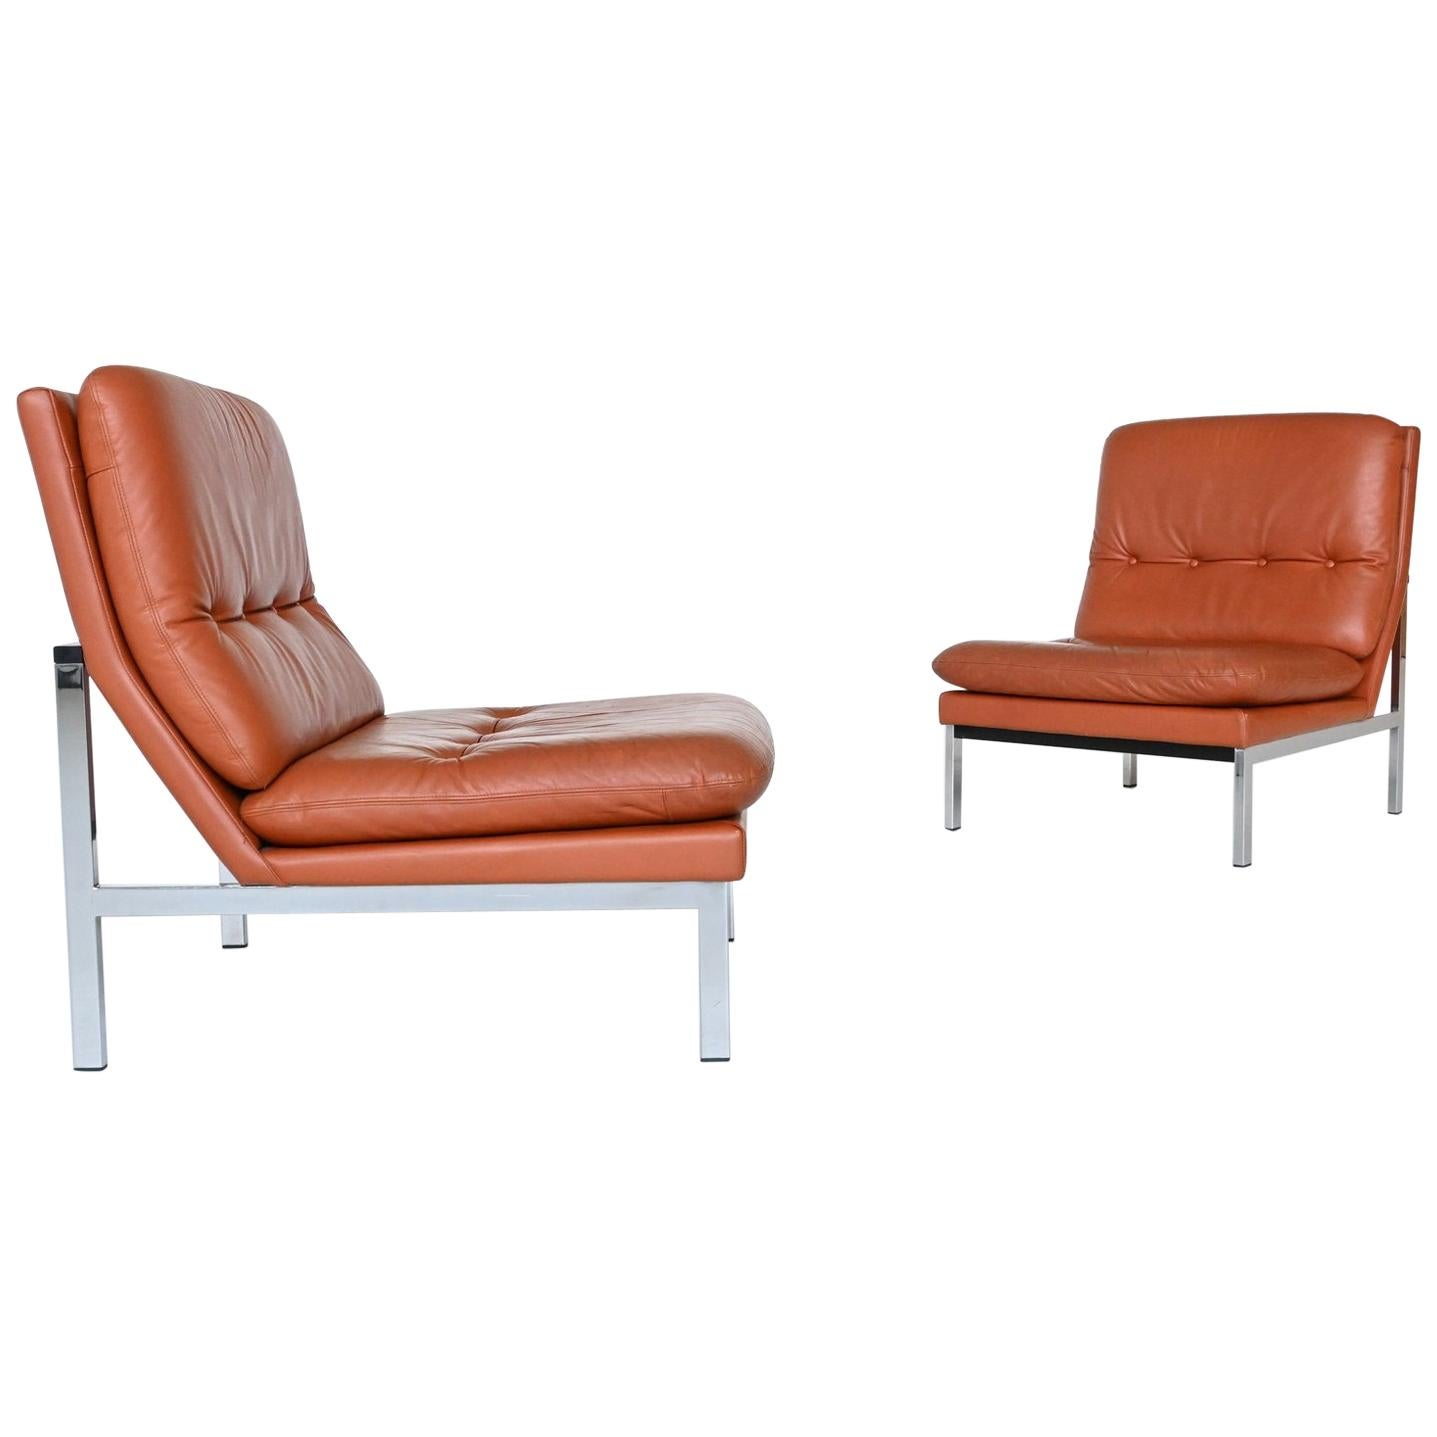 Beaufort Style Cognac Leather Pair of Lounge Chairs, Belgium, 1960